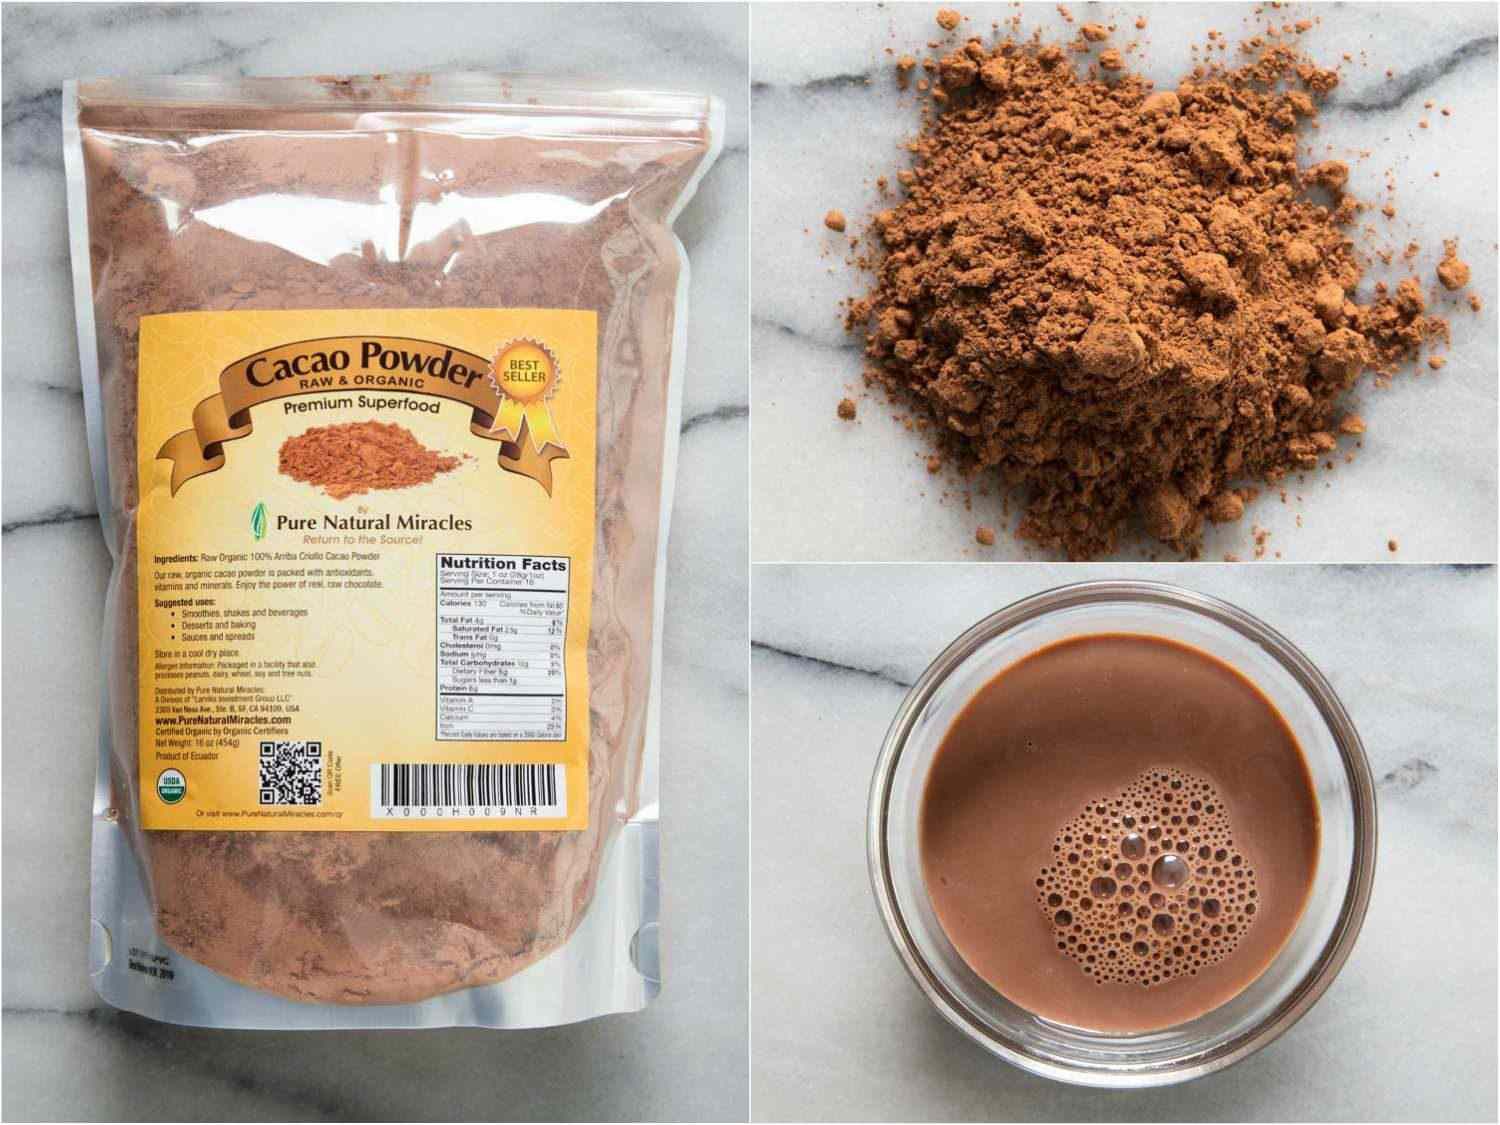 Collage of Pure Natural Miracles cocoa powder, by itself, in hot cocoa, and in the packaging